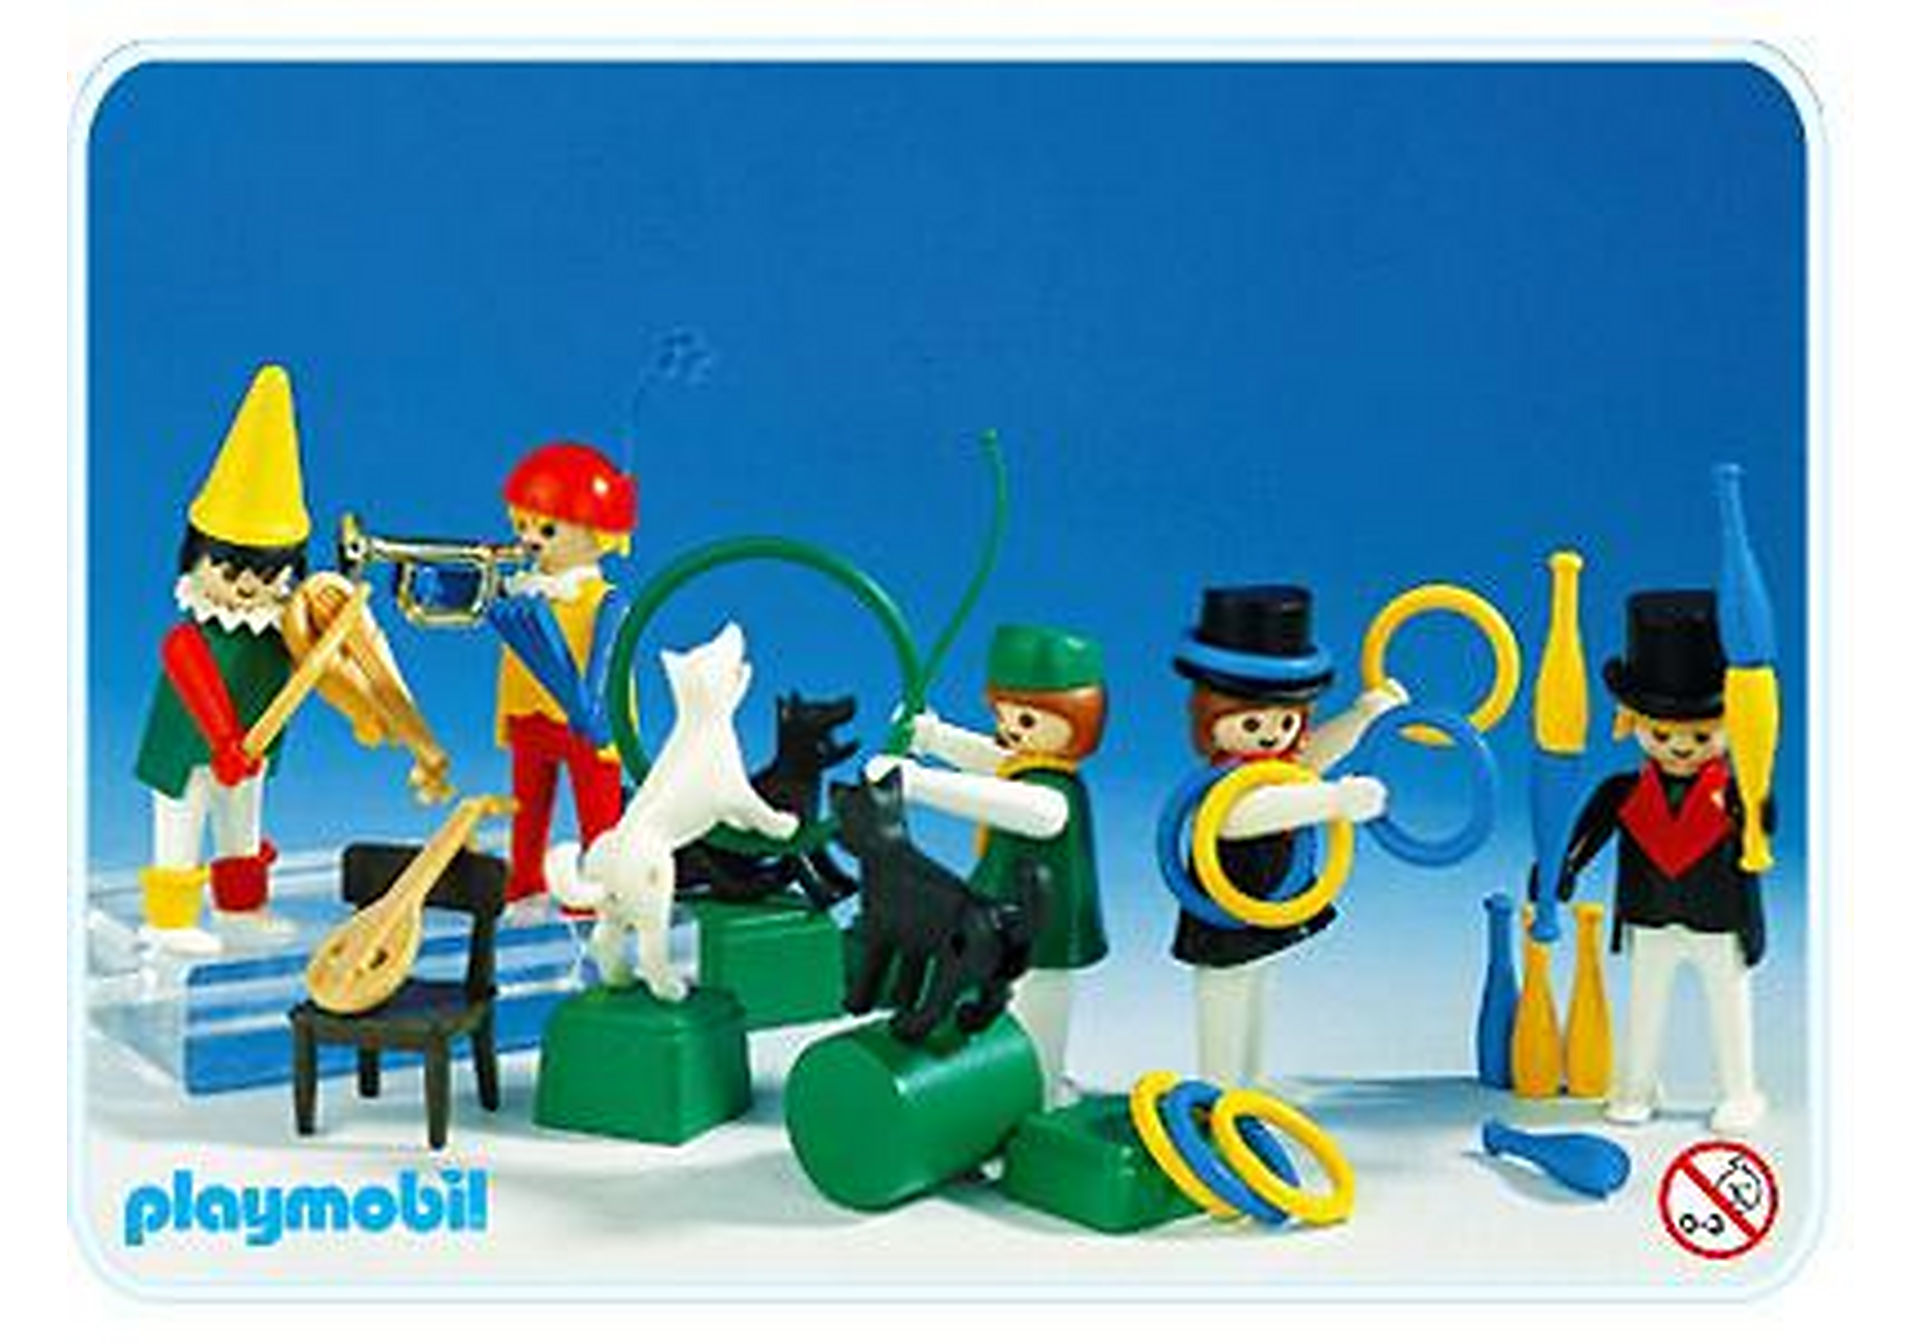 http://media.playmobil.com/i/playmobil/3513-A_product_detail/Zirkuswelt